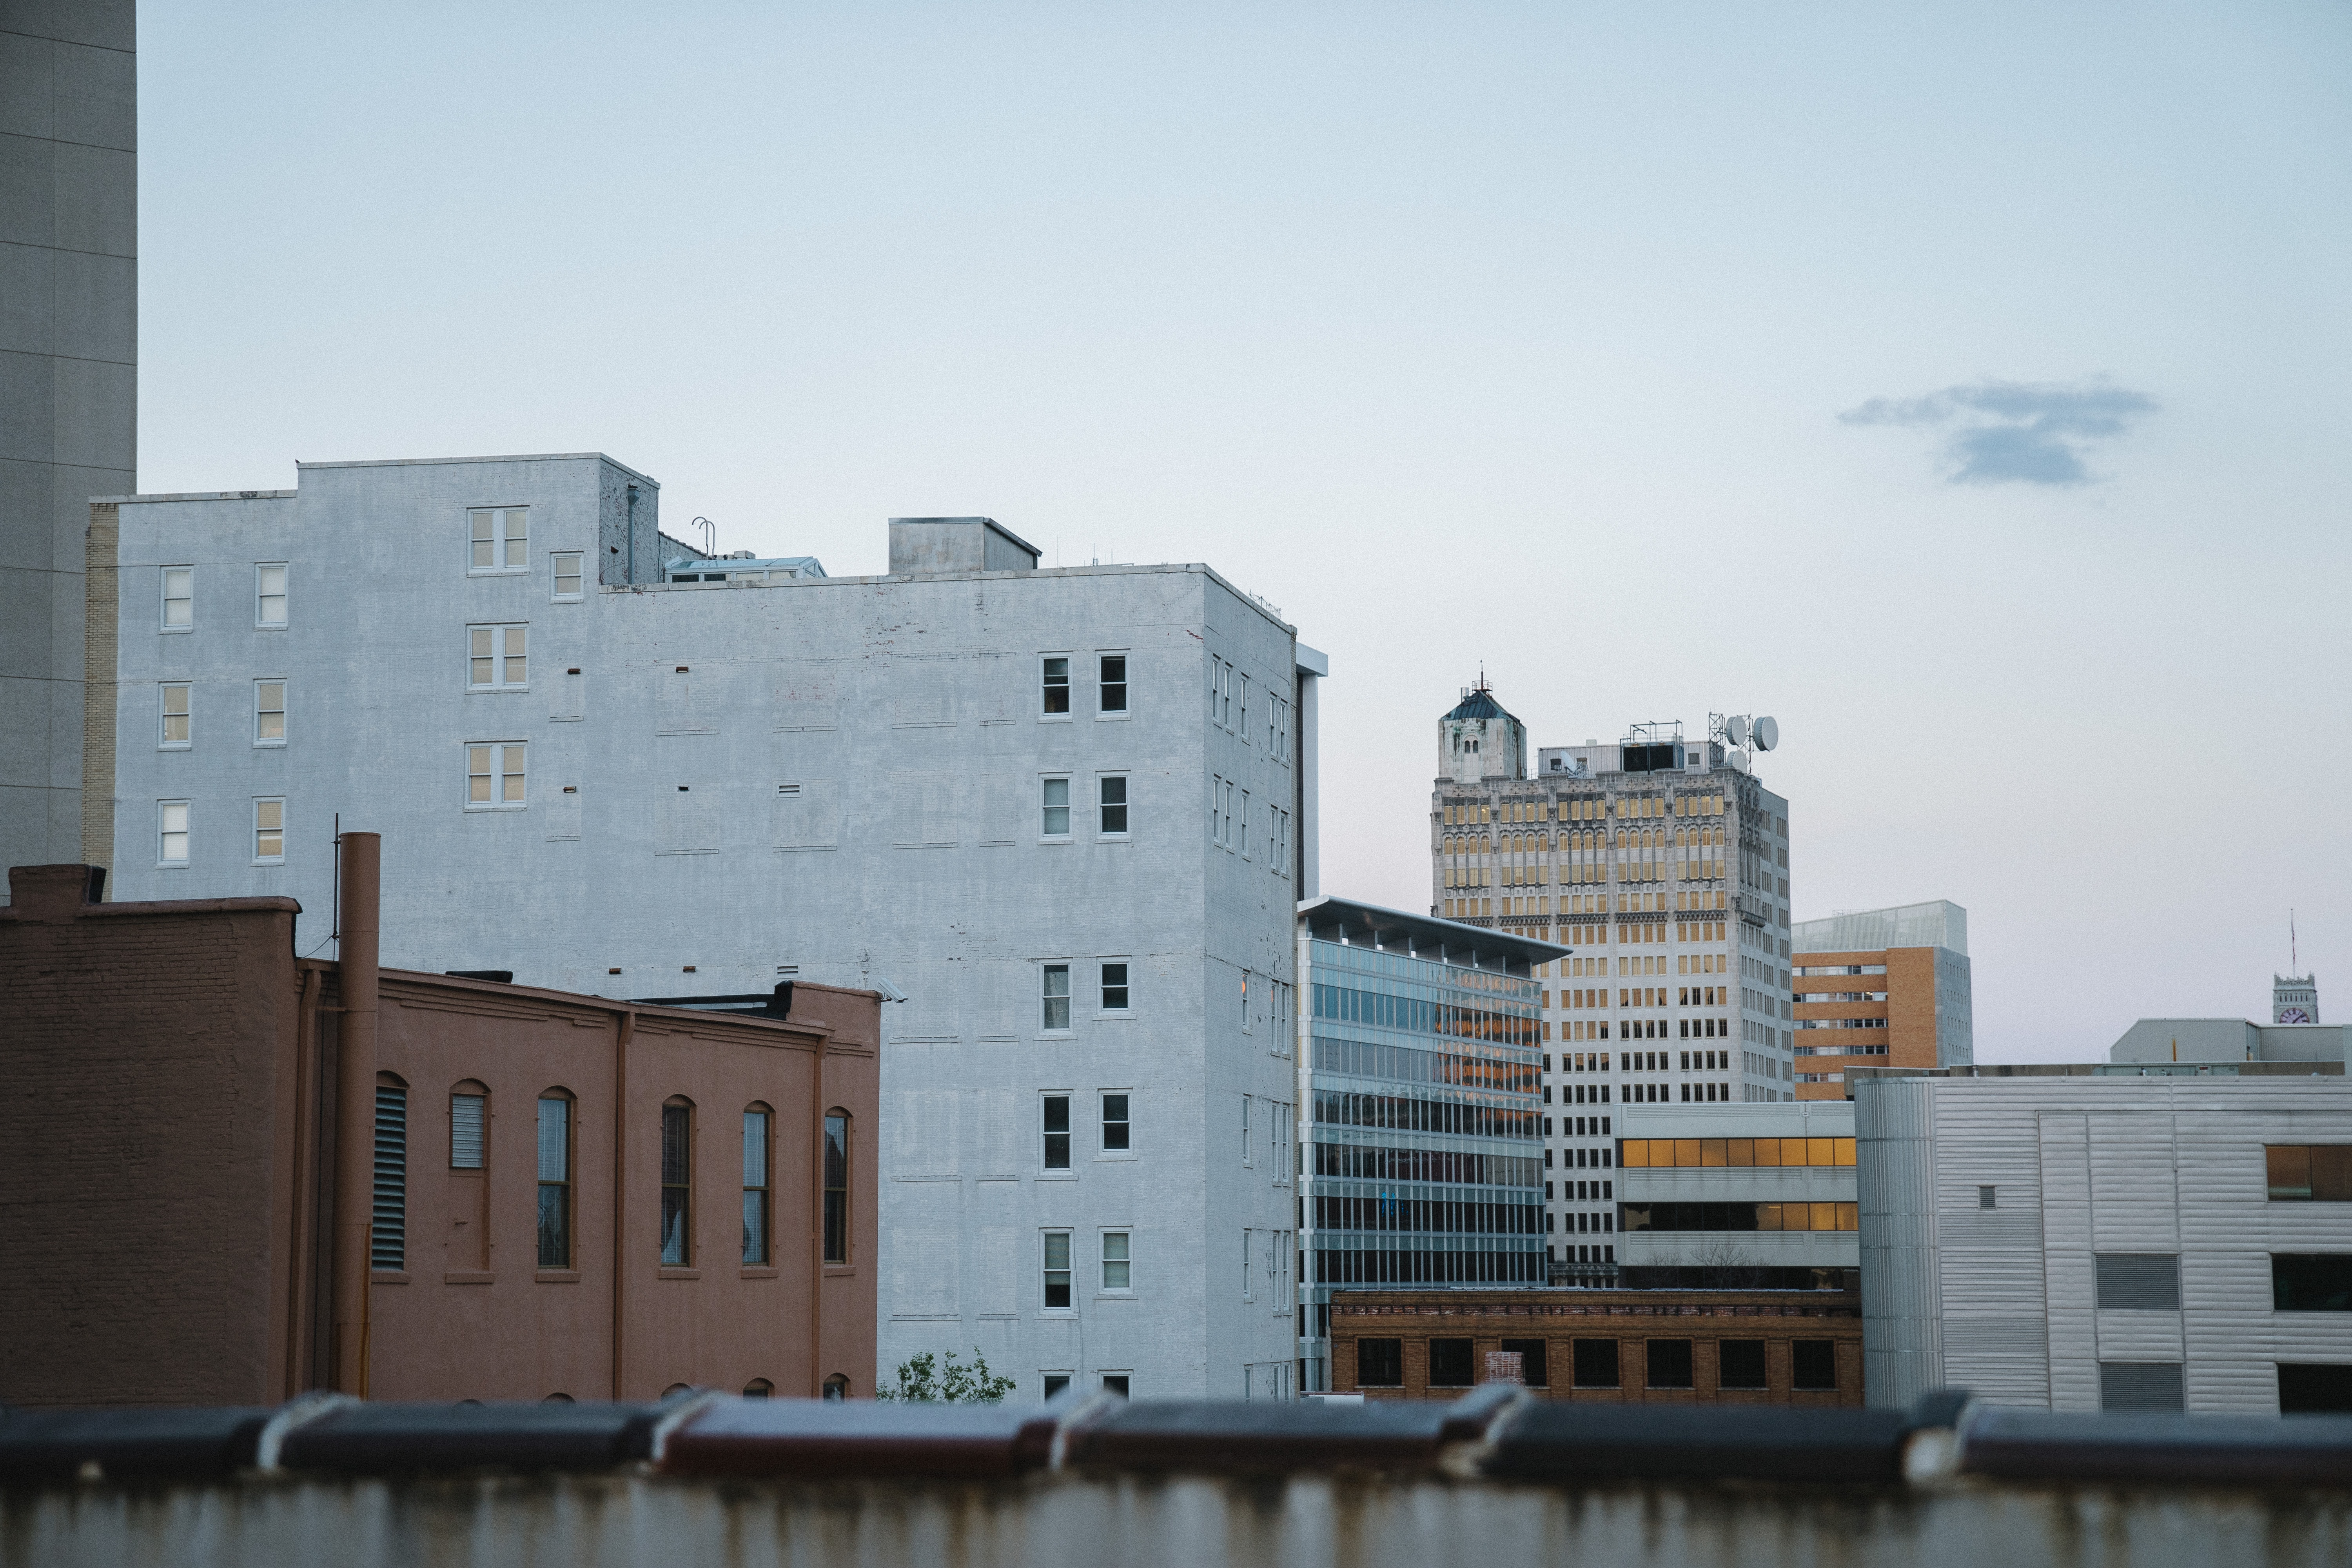 landscape photography of white and brown concrete buildings under cloudy sky